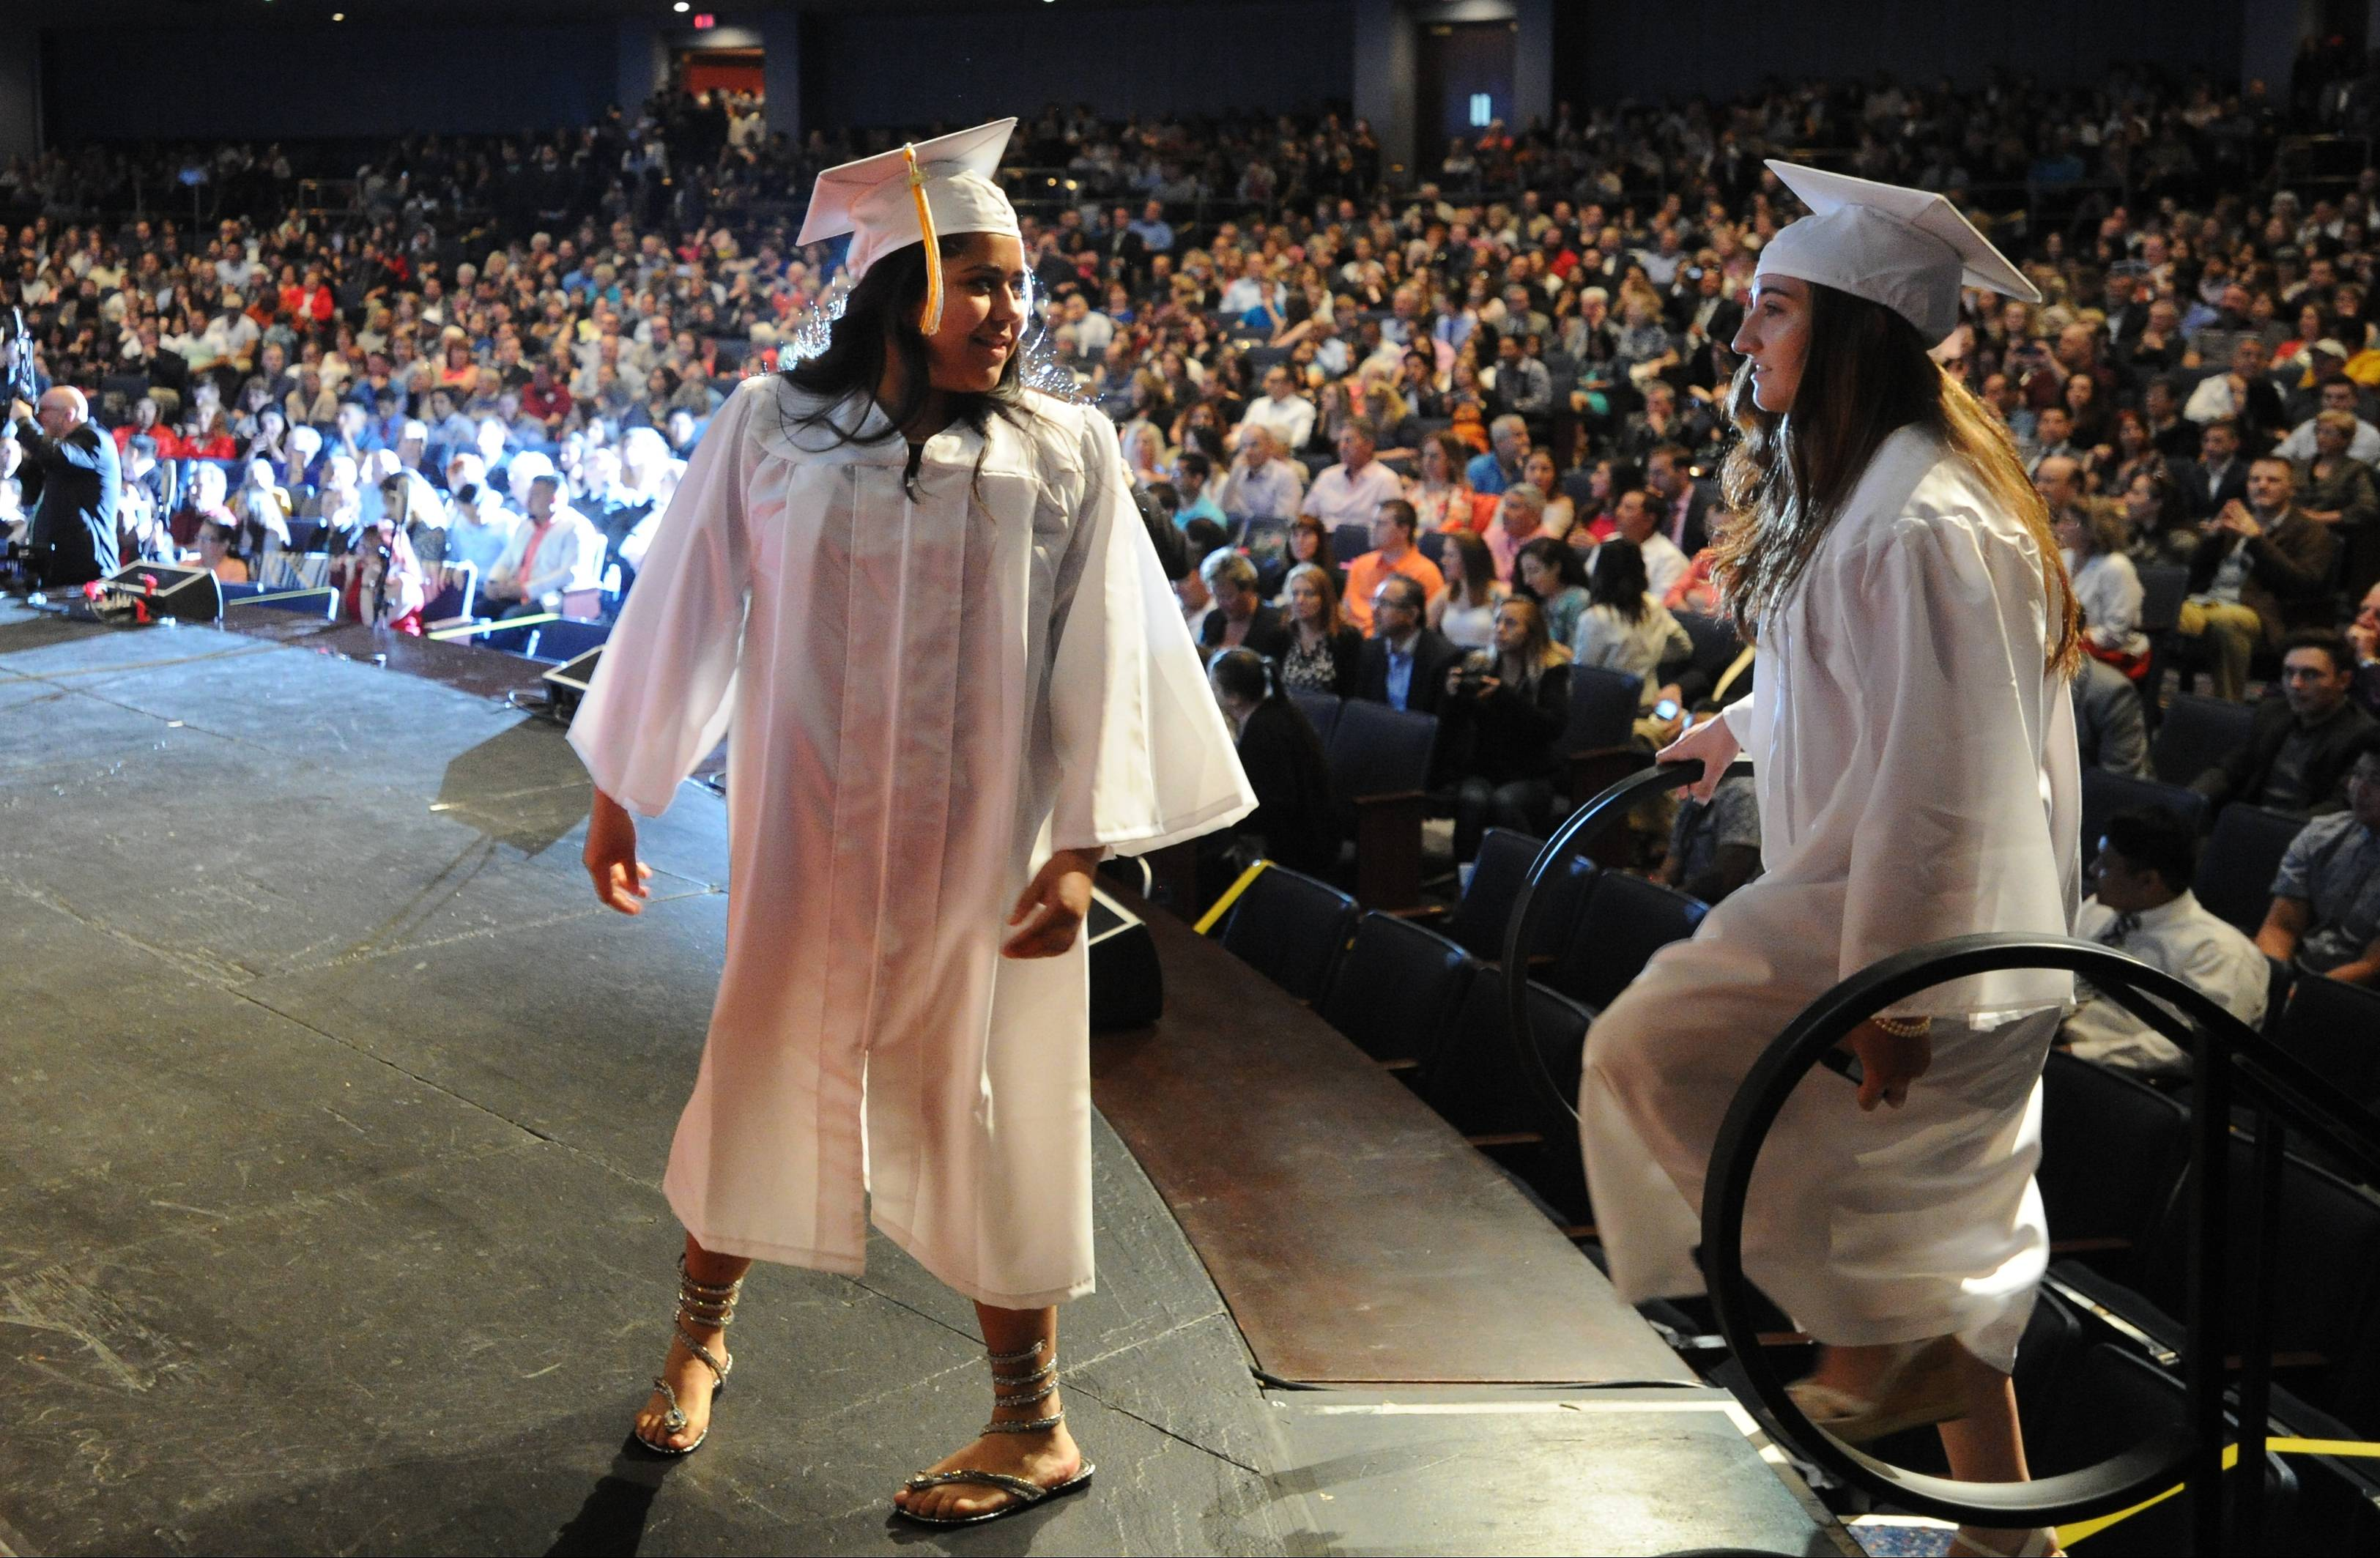 Maine West High School's graduation was held at the Rosemont Theatre, which costs between $20,000 and $75,000 to rent for ceremonies.